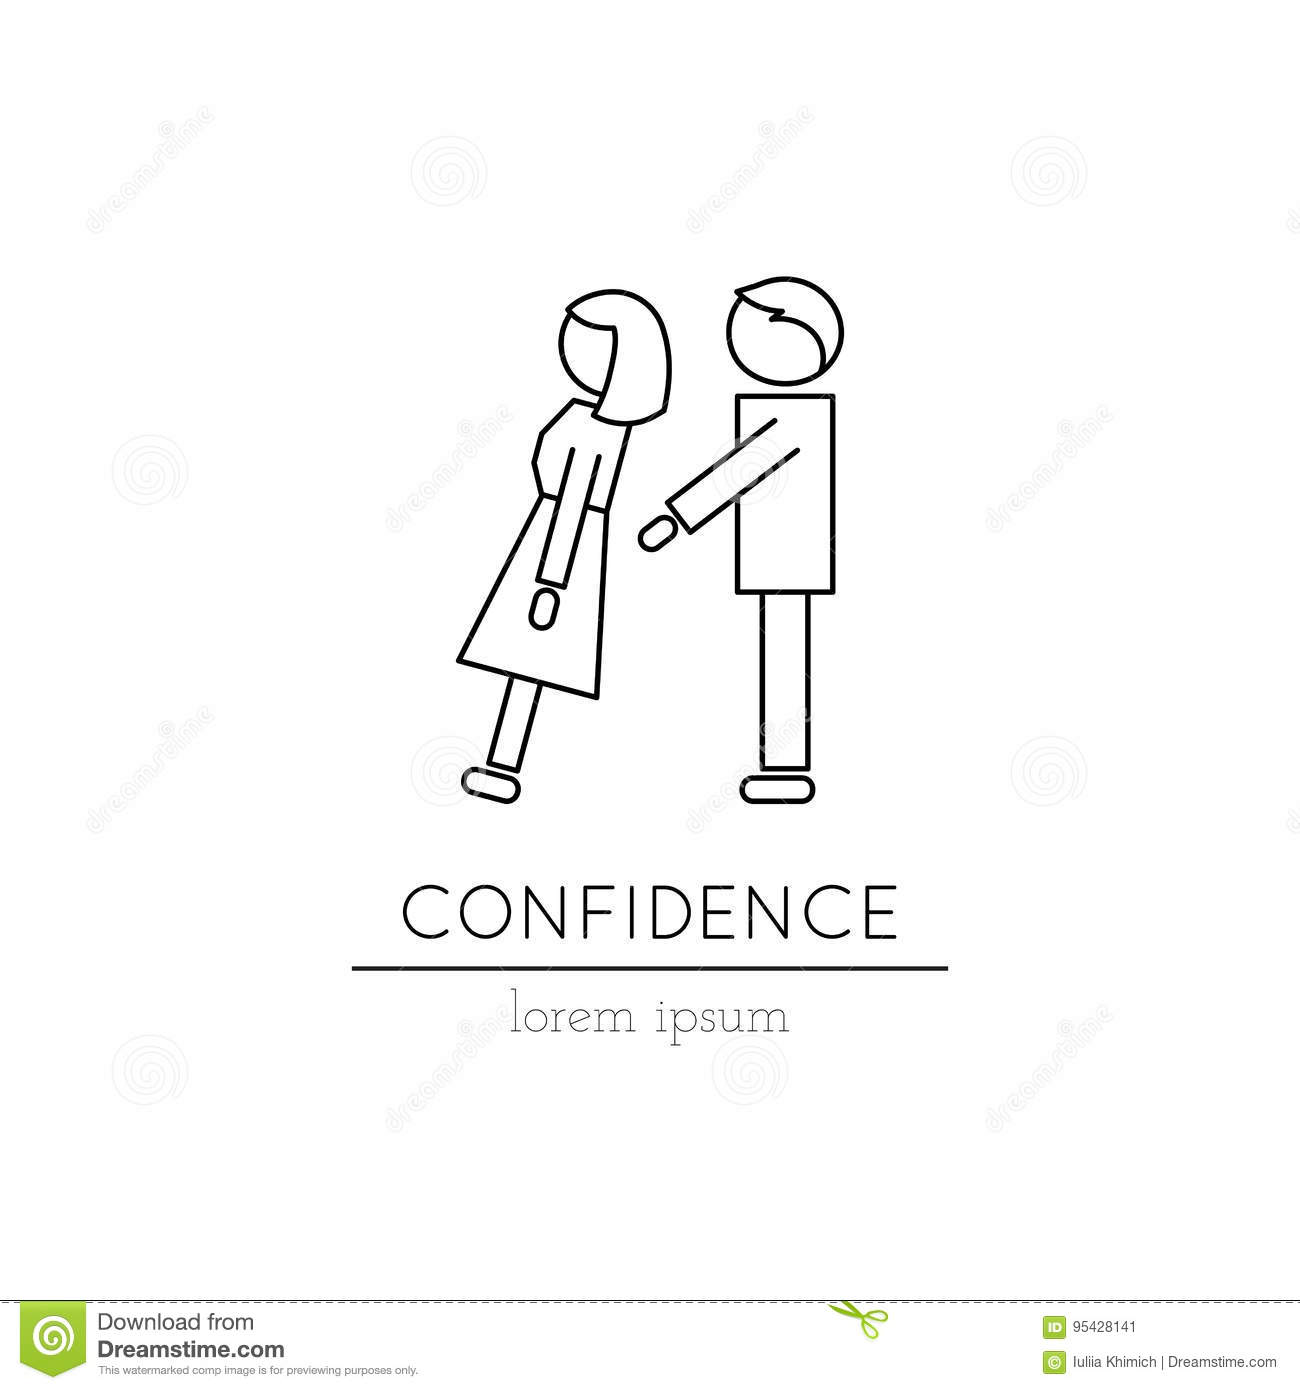 Confidence line icon stock vector. Illustration of